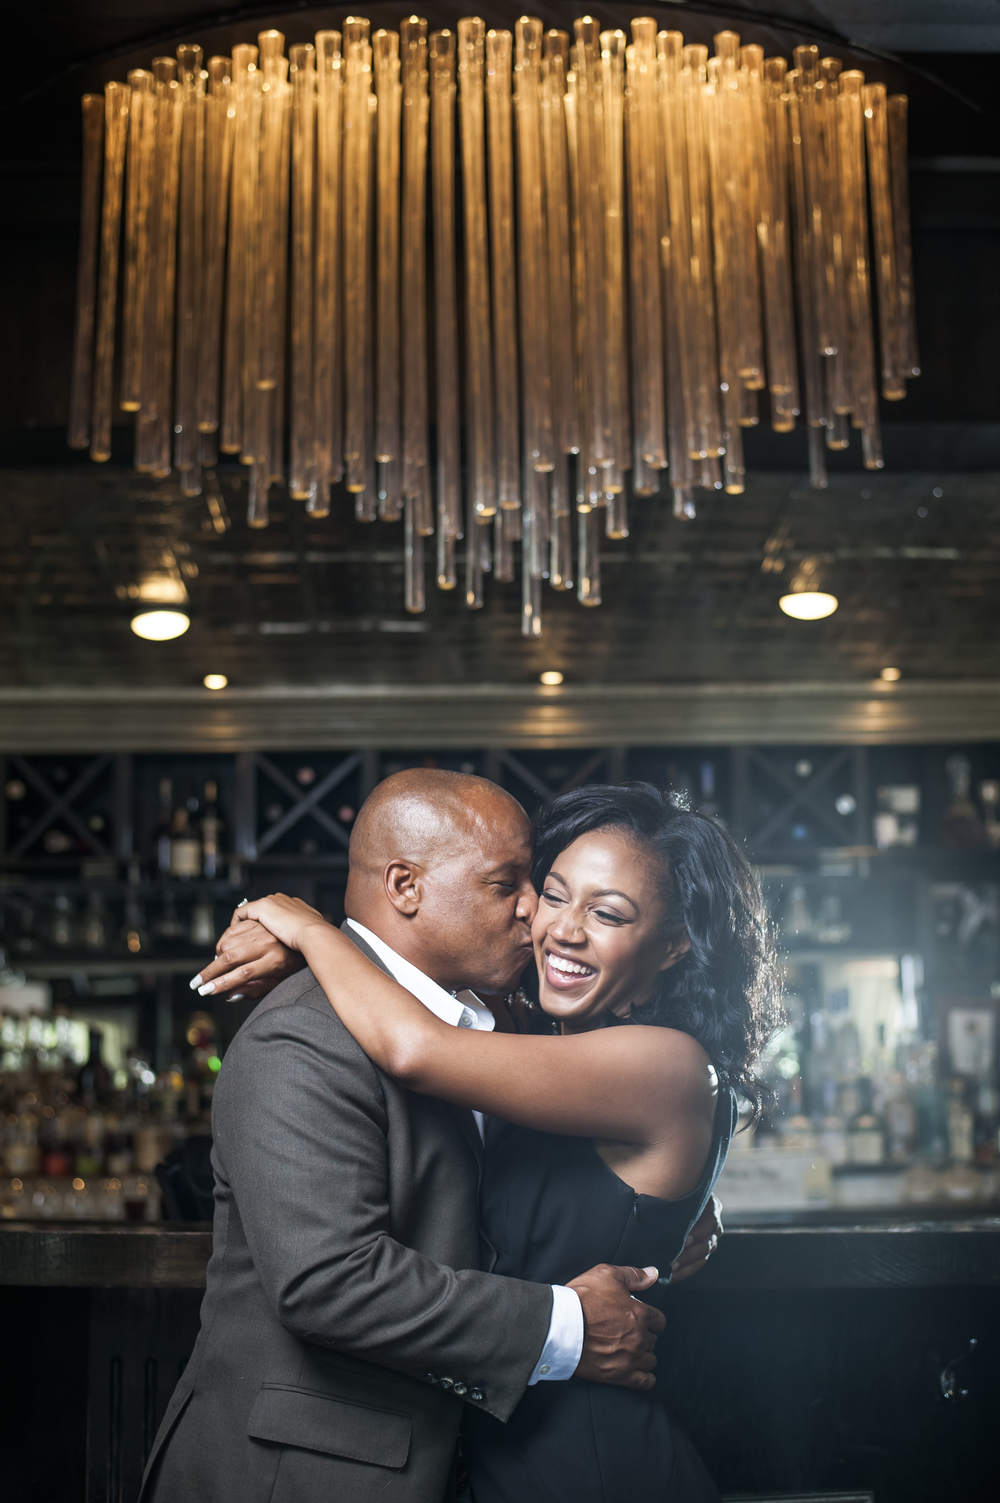 Engagement Session - Uptown - Dallas, TX